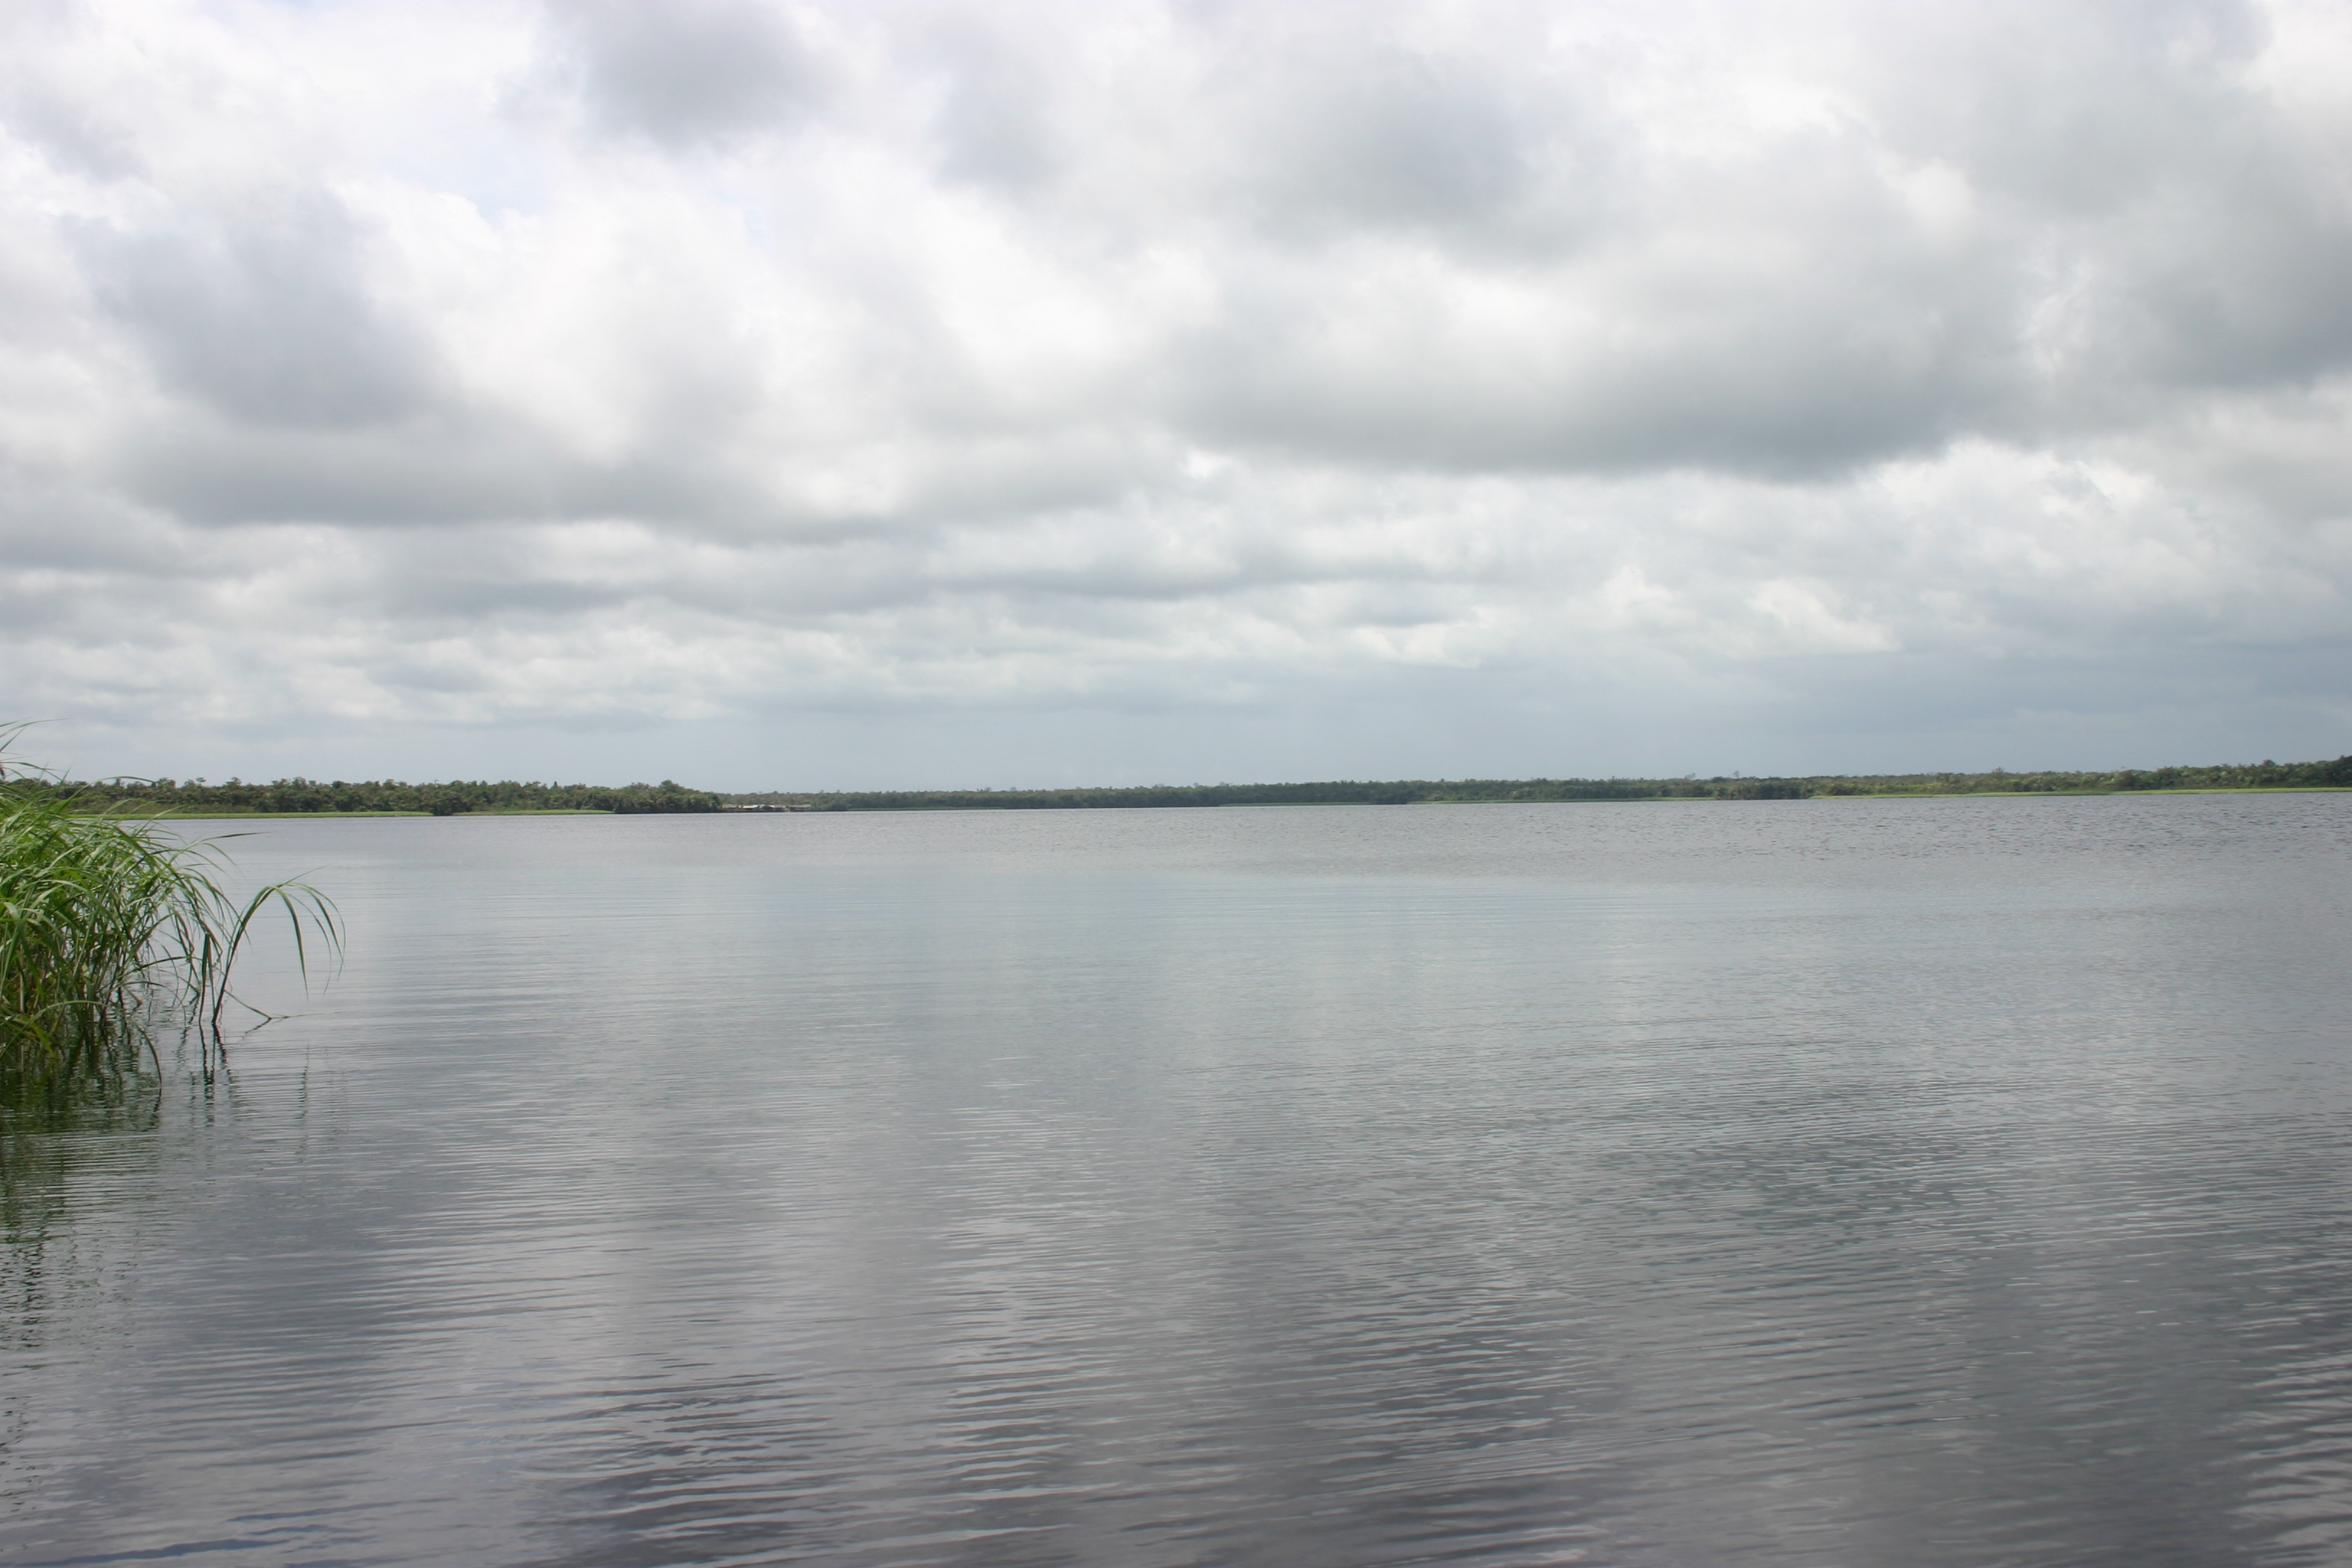 Lake Tadane, in Western Ghana. Just beautiful isn't it? Elwin takes you close enough to paradise each time!